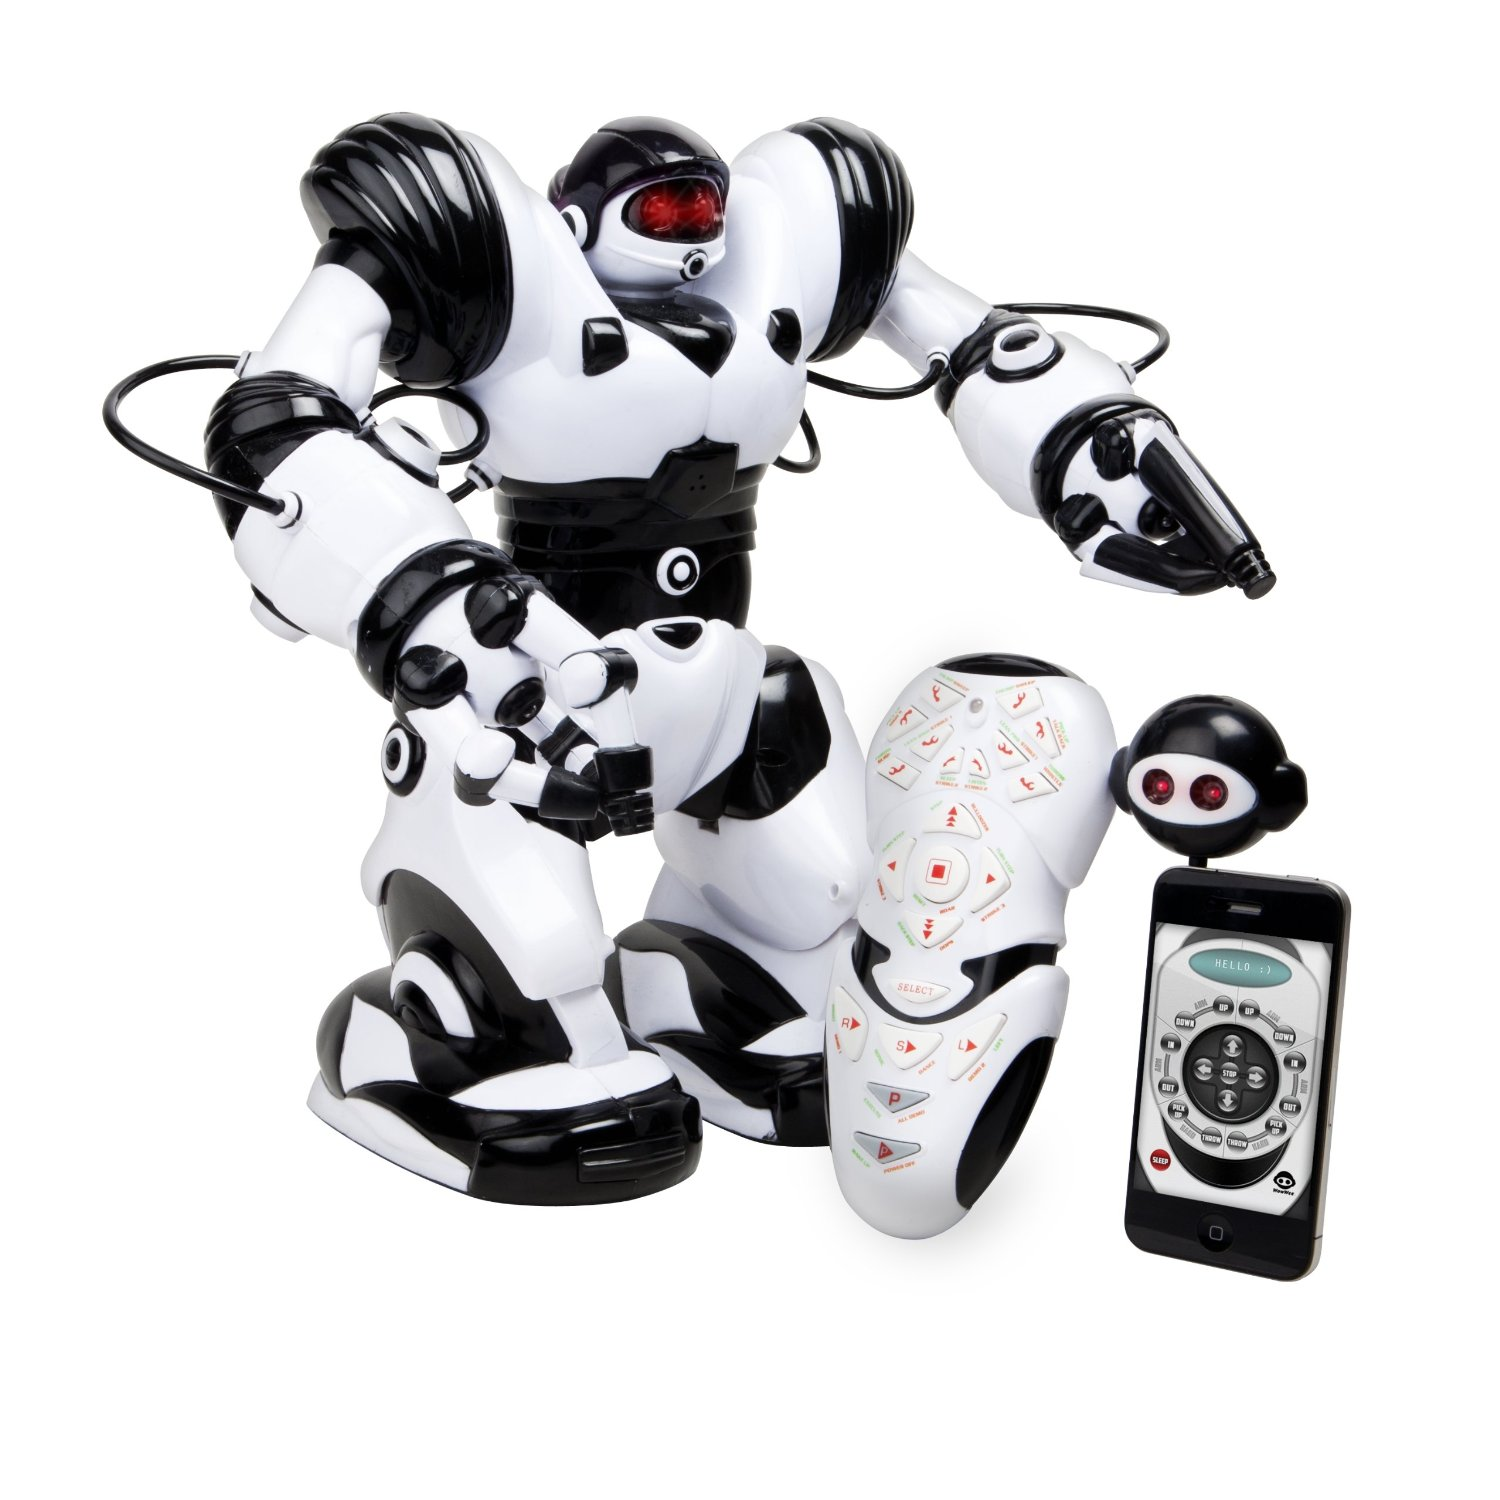 Why Robot Toys Are e The Best Gifts For Your Kids Digital